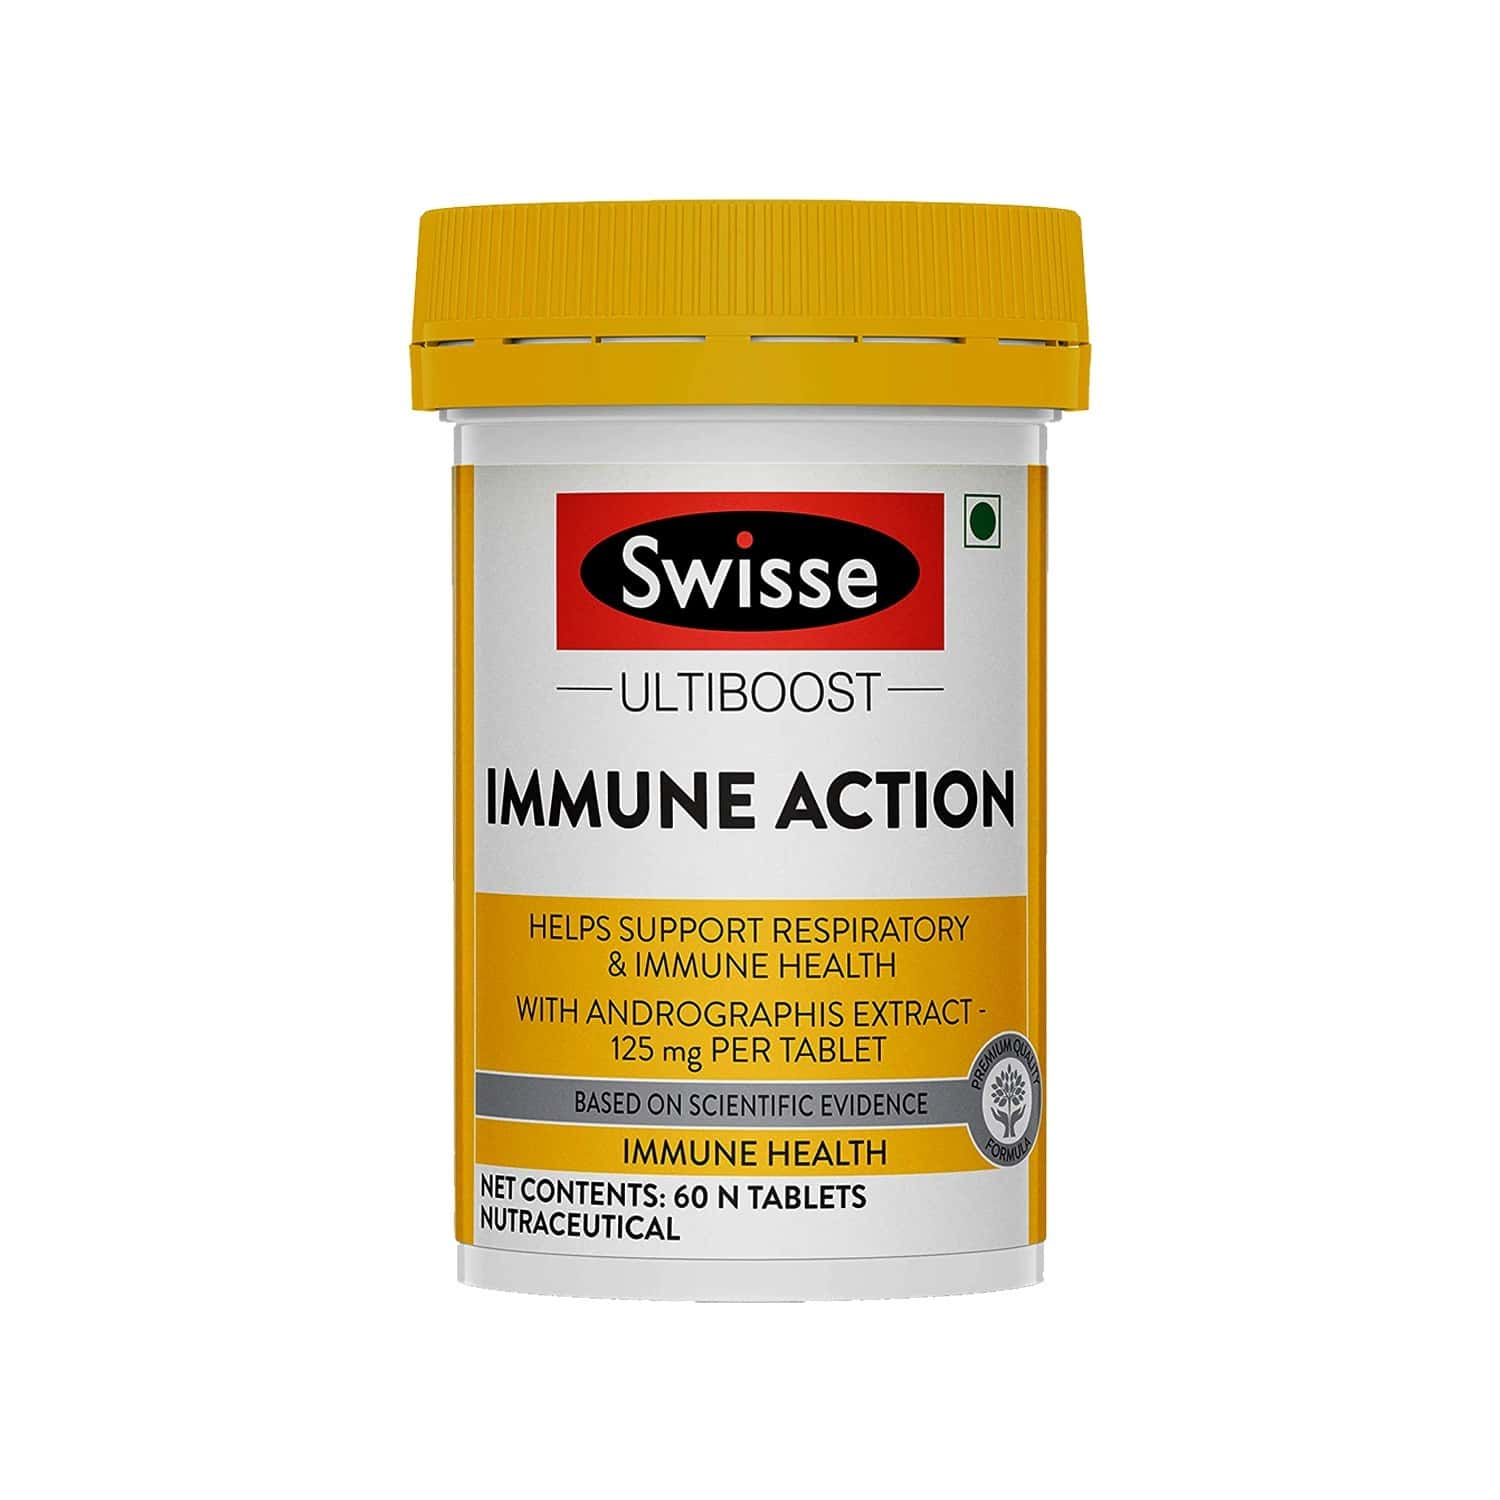 Swisse Ultiboost Immune Action With 125mg Andrographis Extract Per Tablet That Helps Support Respiratory And Immune Health - 60 Tablets